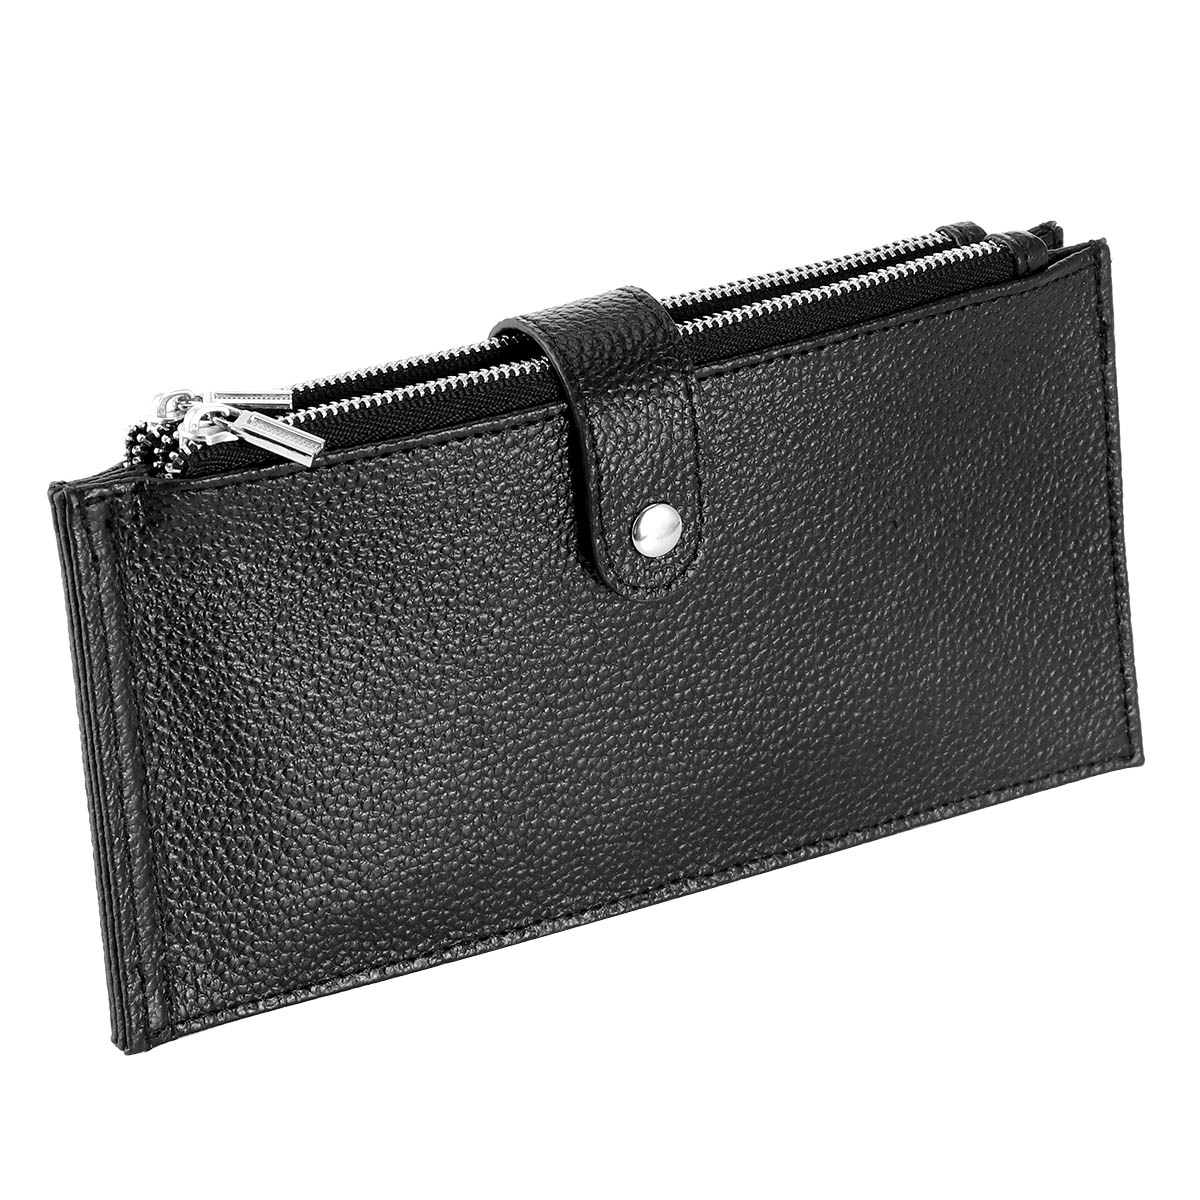 Genuine Leather Checkbook Credit Card ID Lady 2 Zipper Coin Wallet ID US SELLER